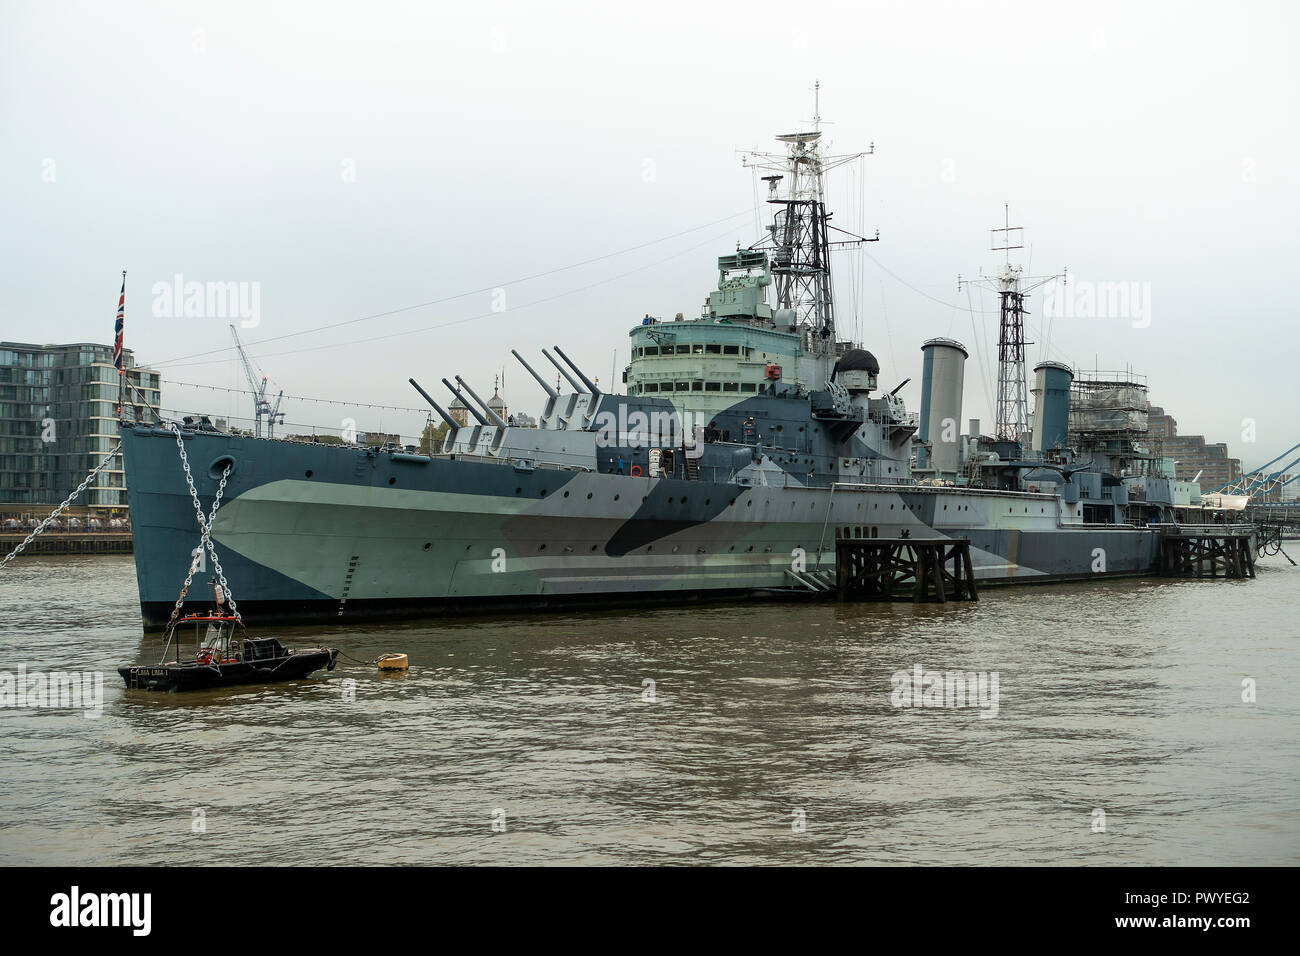 The World War Two Light Cruiser HMS Belfast a Floating Museum Moored in River Thames near Tower Bridge London England United Kingdom UK Stock Photo